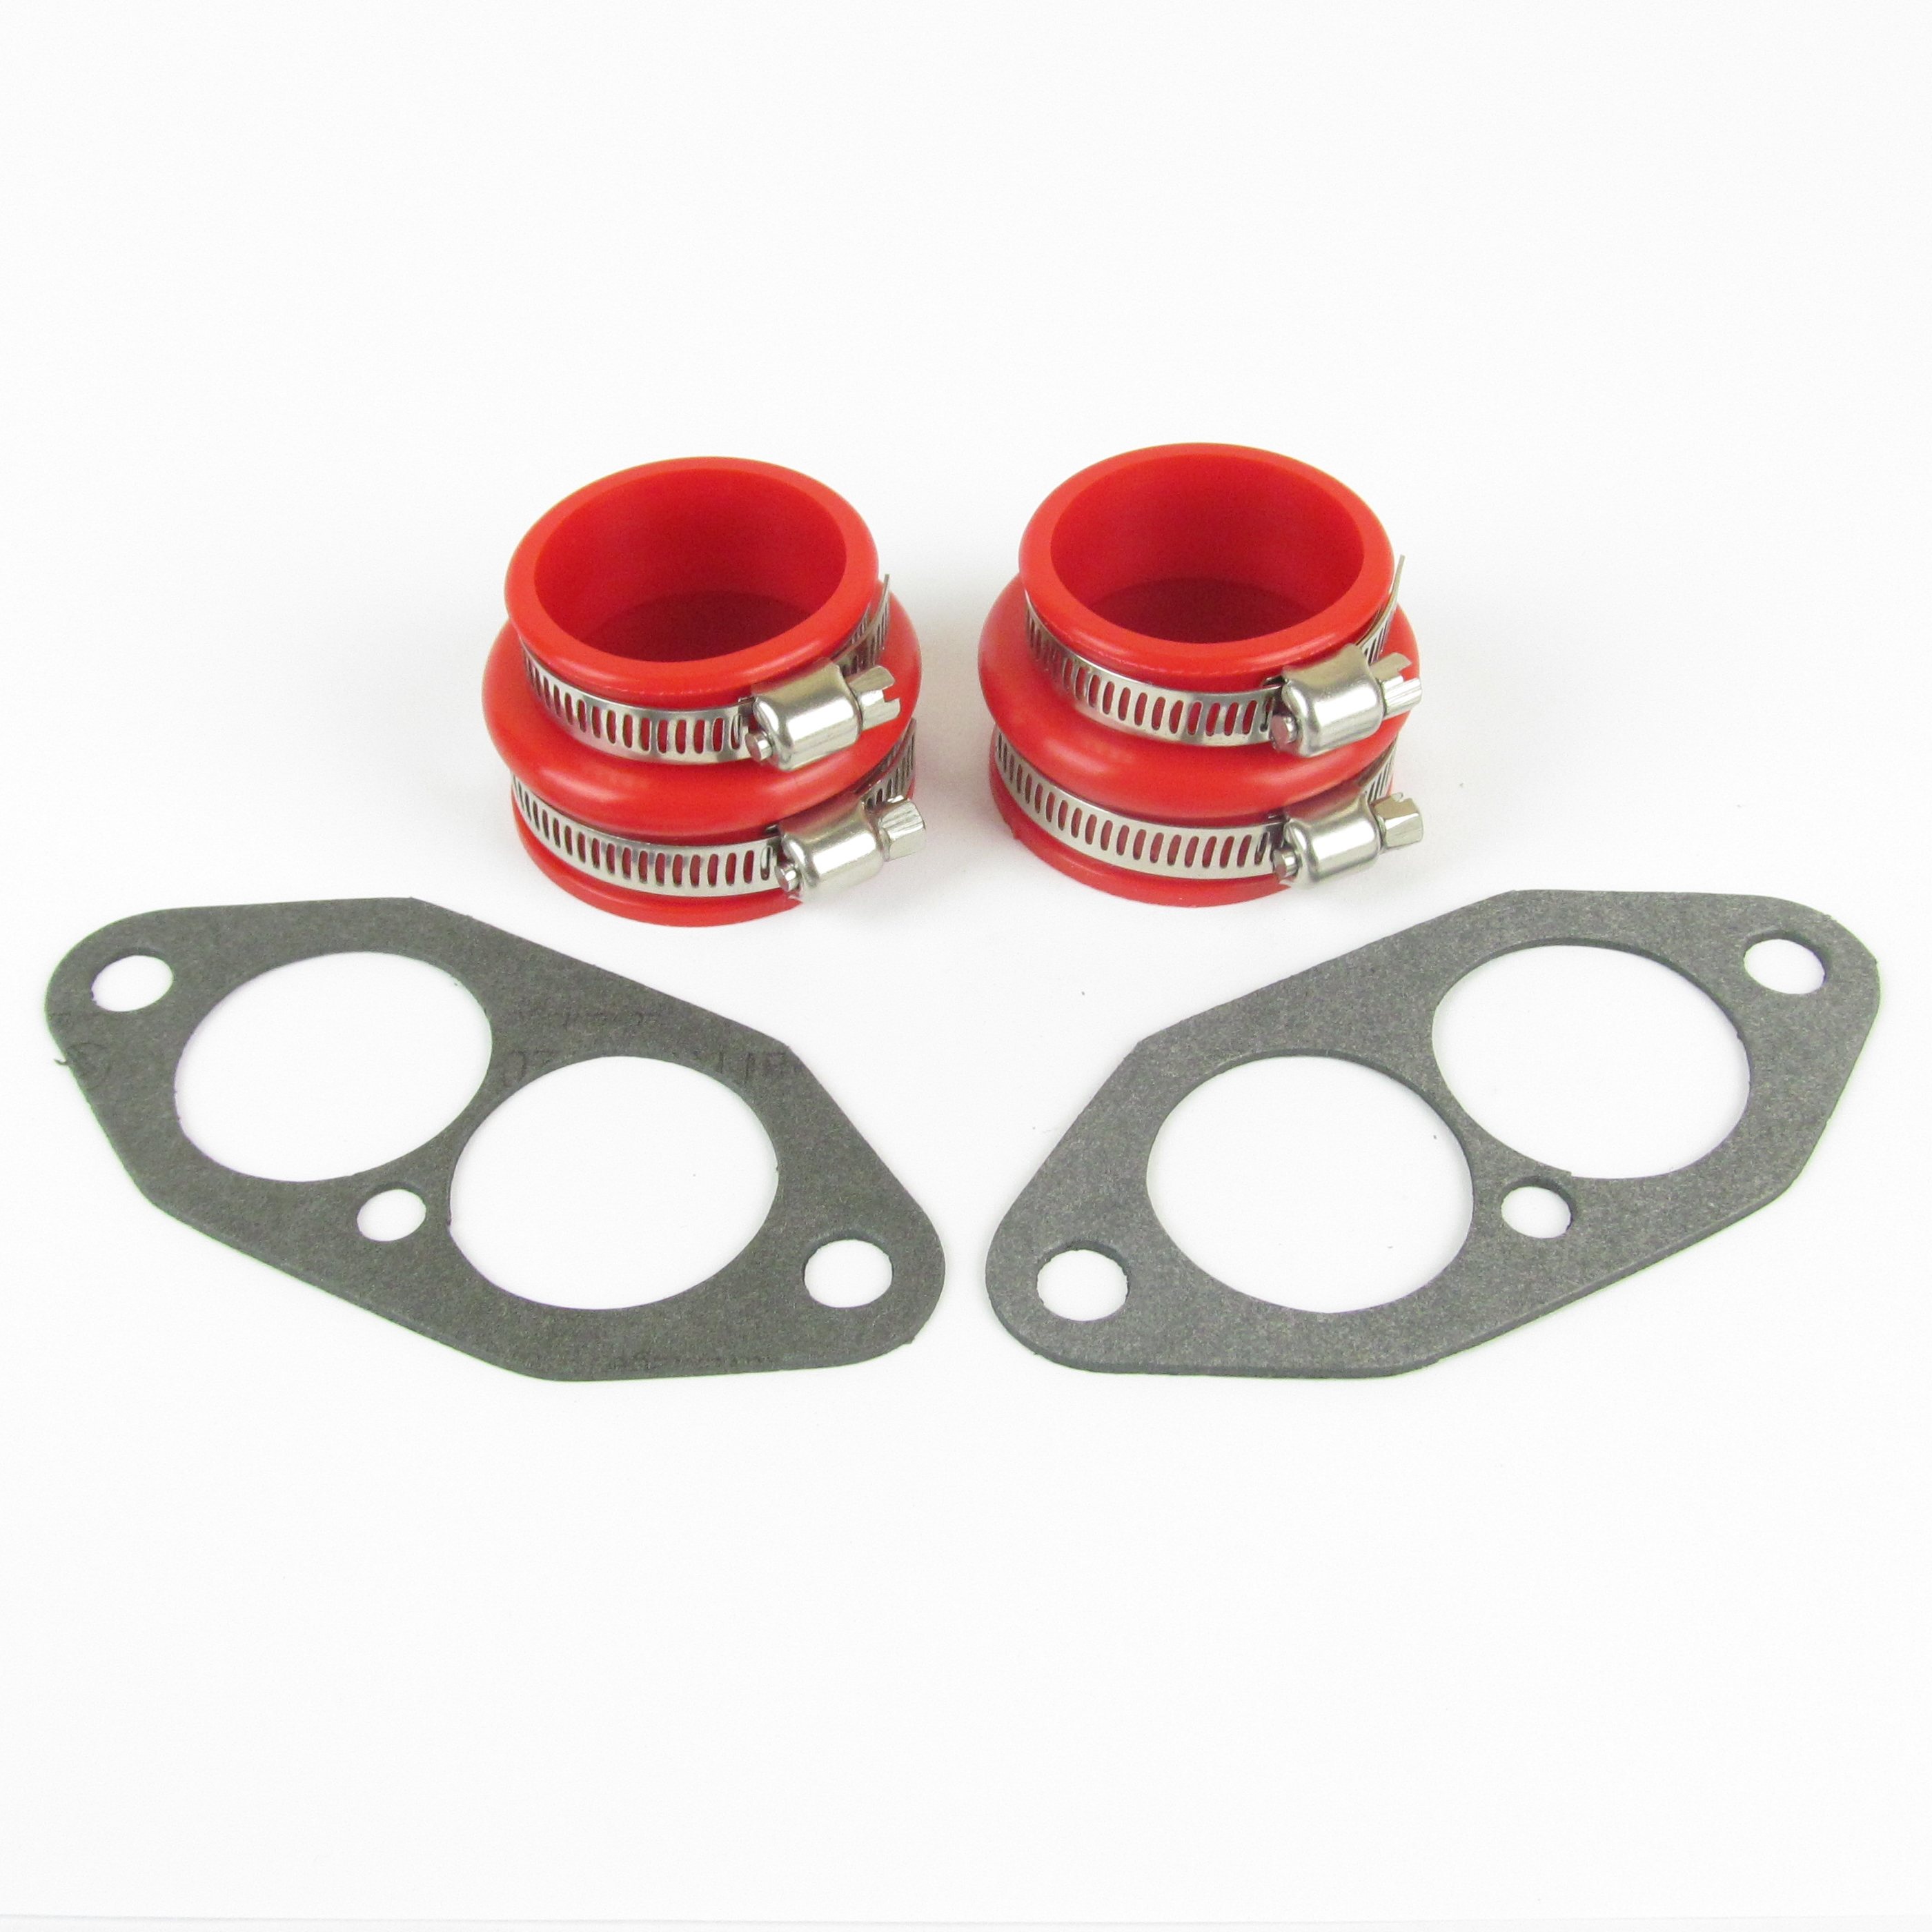 Kit de instalado de duobla haveno de VW Air-Cooled Engine Por WEBER twin-choke Progressive Carbs